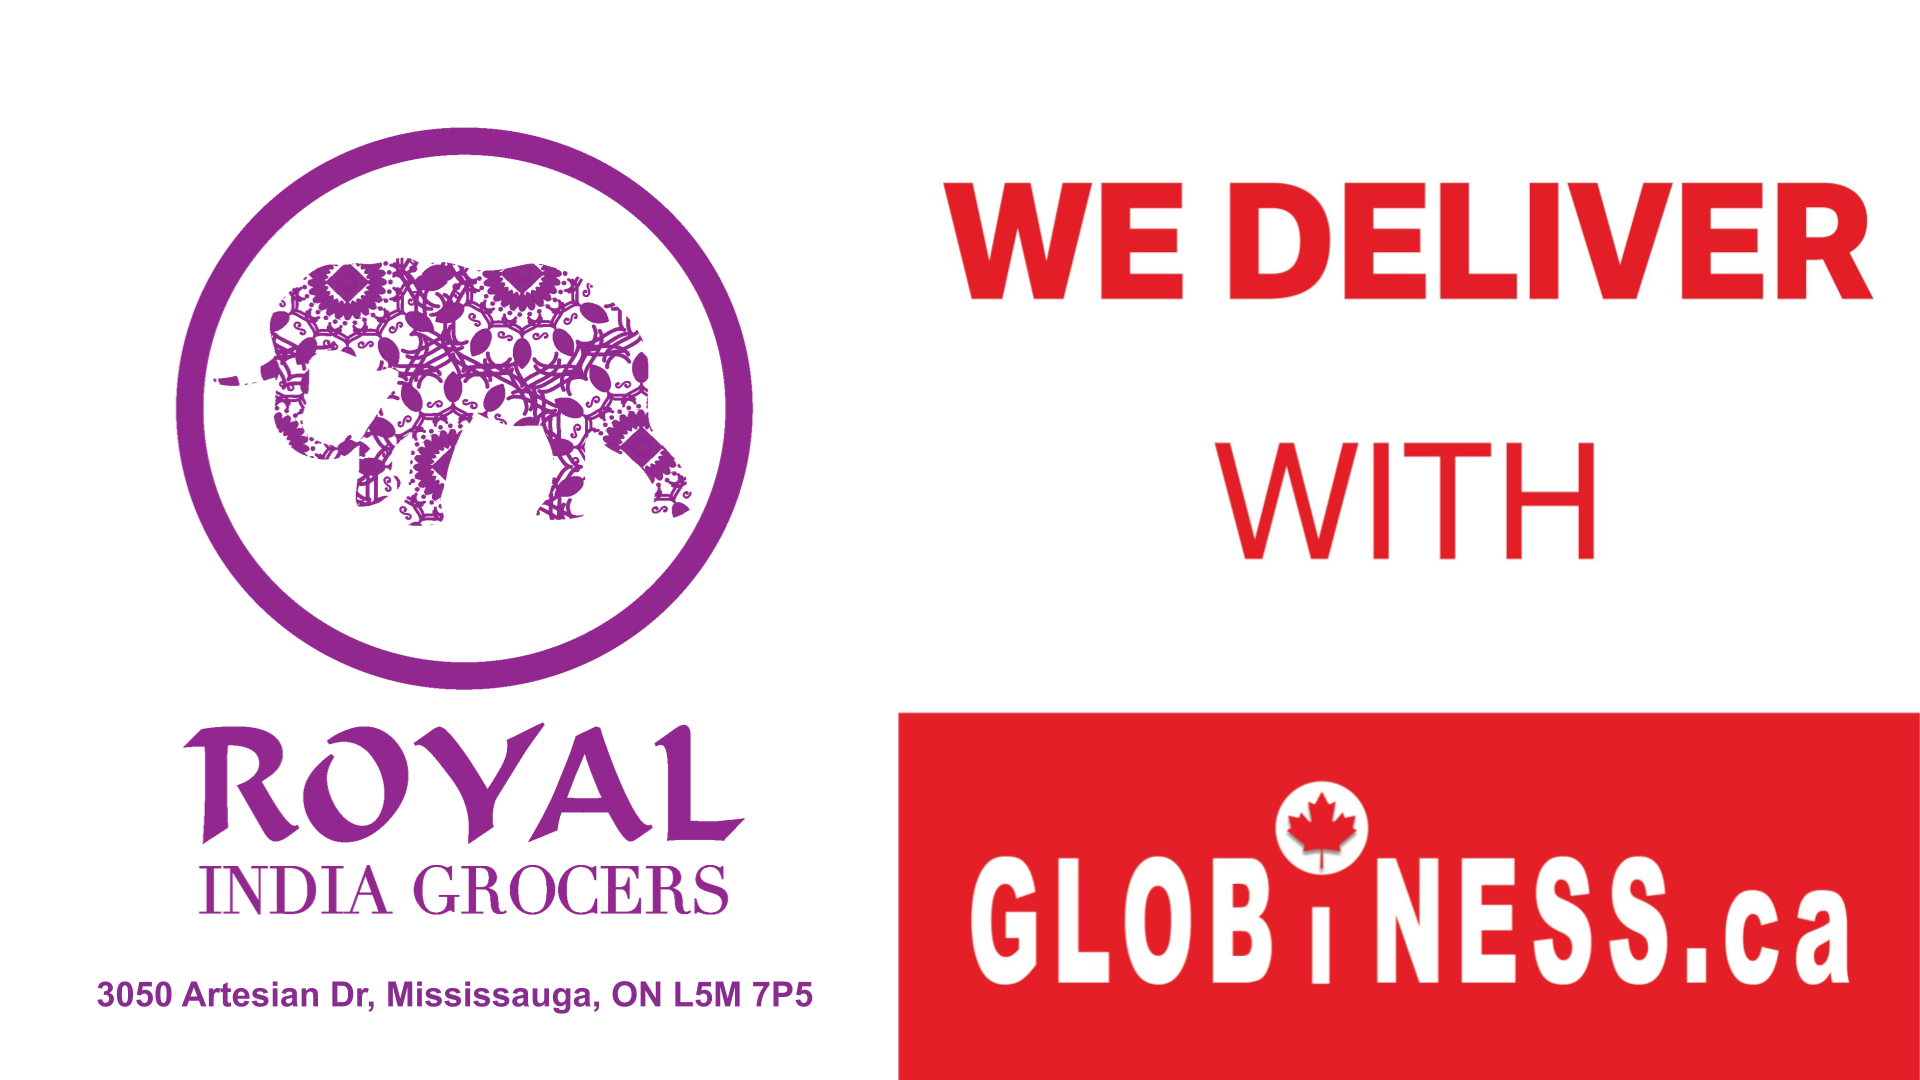 Royal India Grocers Now Deliver With Globiness Ca Get Delivery From 7 99 Delivery Groceries Grocery Home Delivery Liquor Delivery